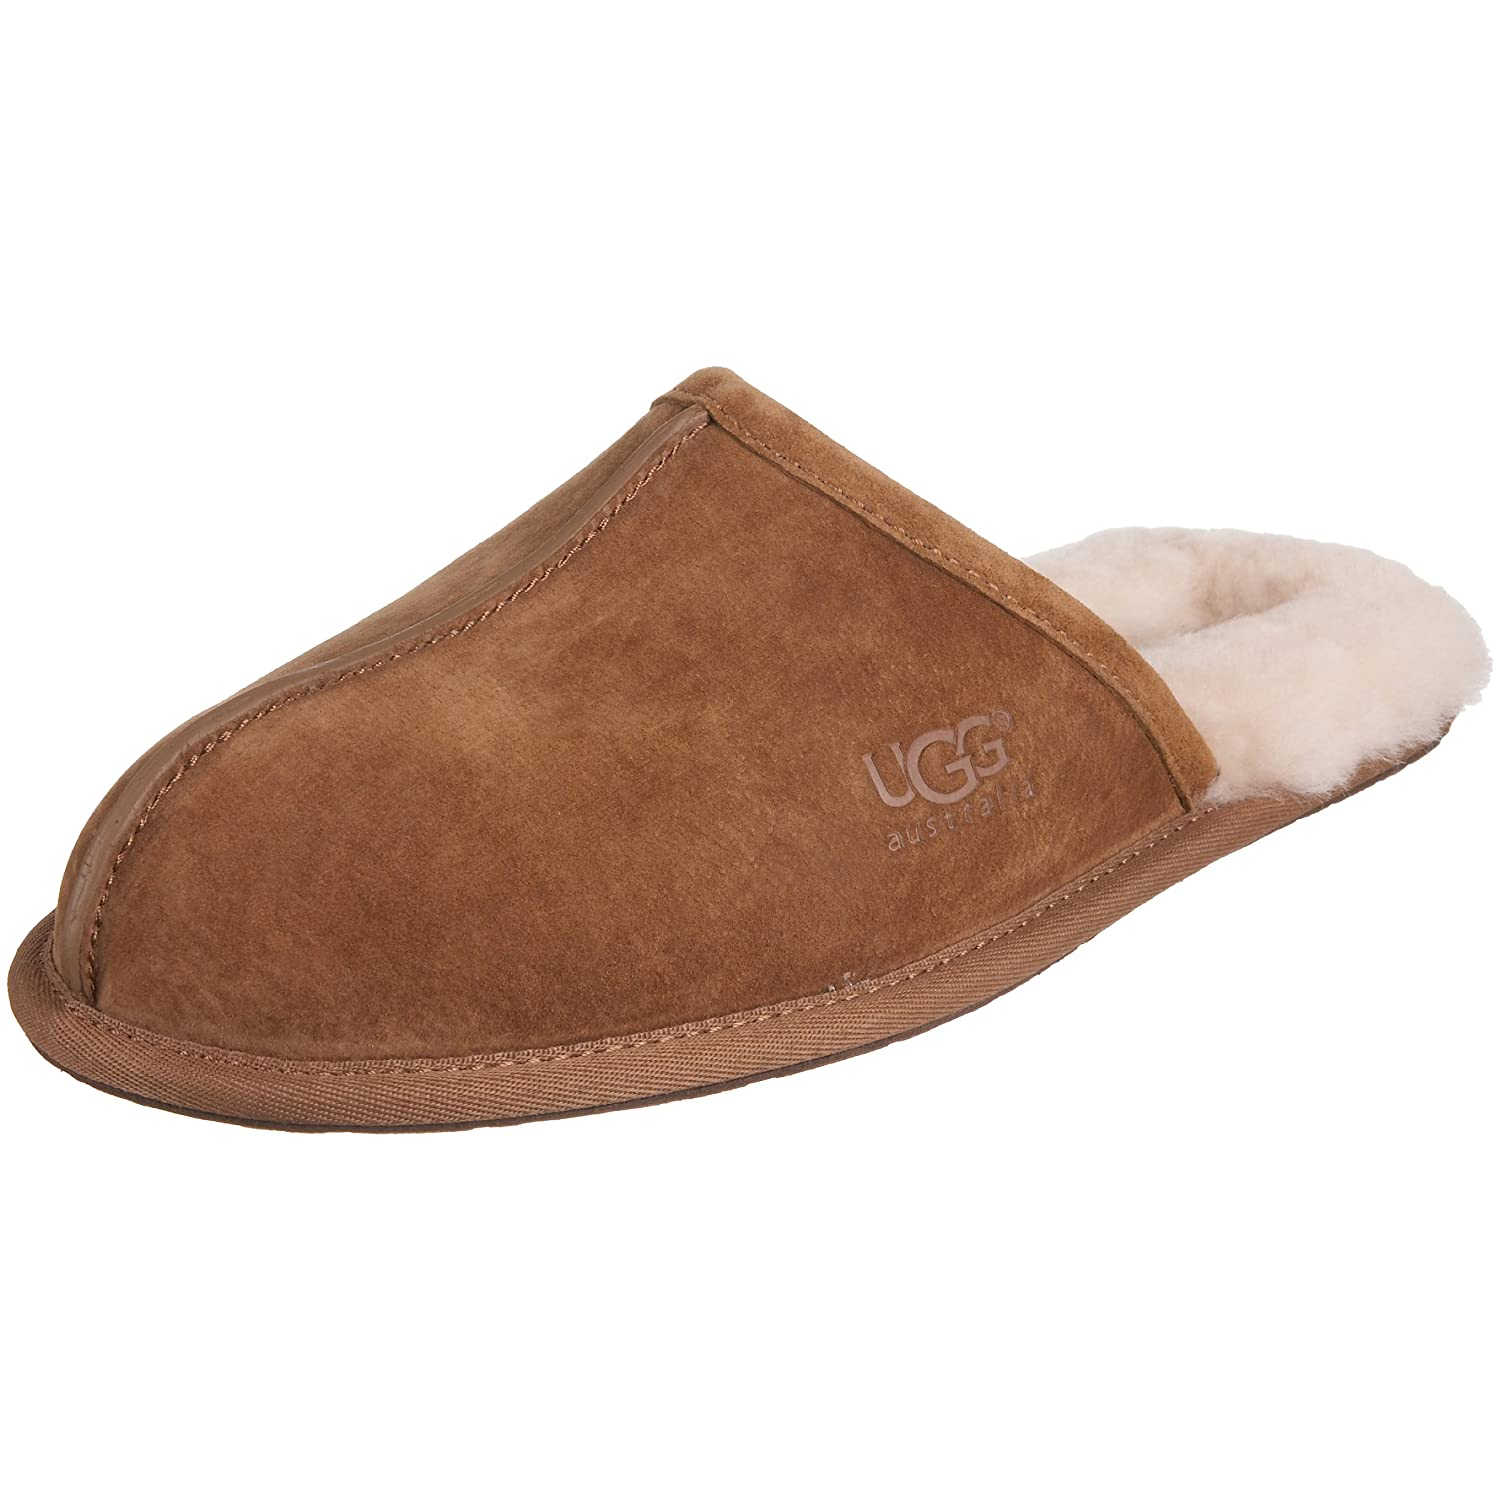 ugg boot house slippers